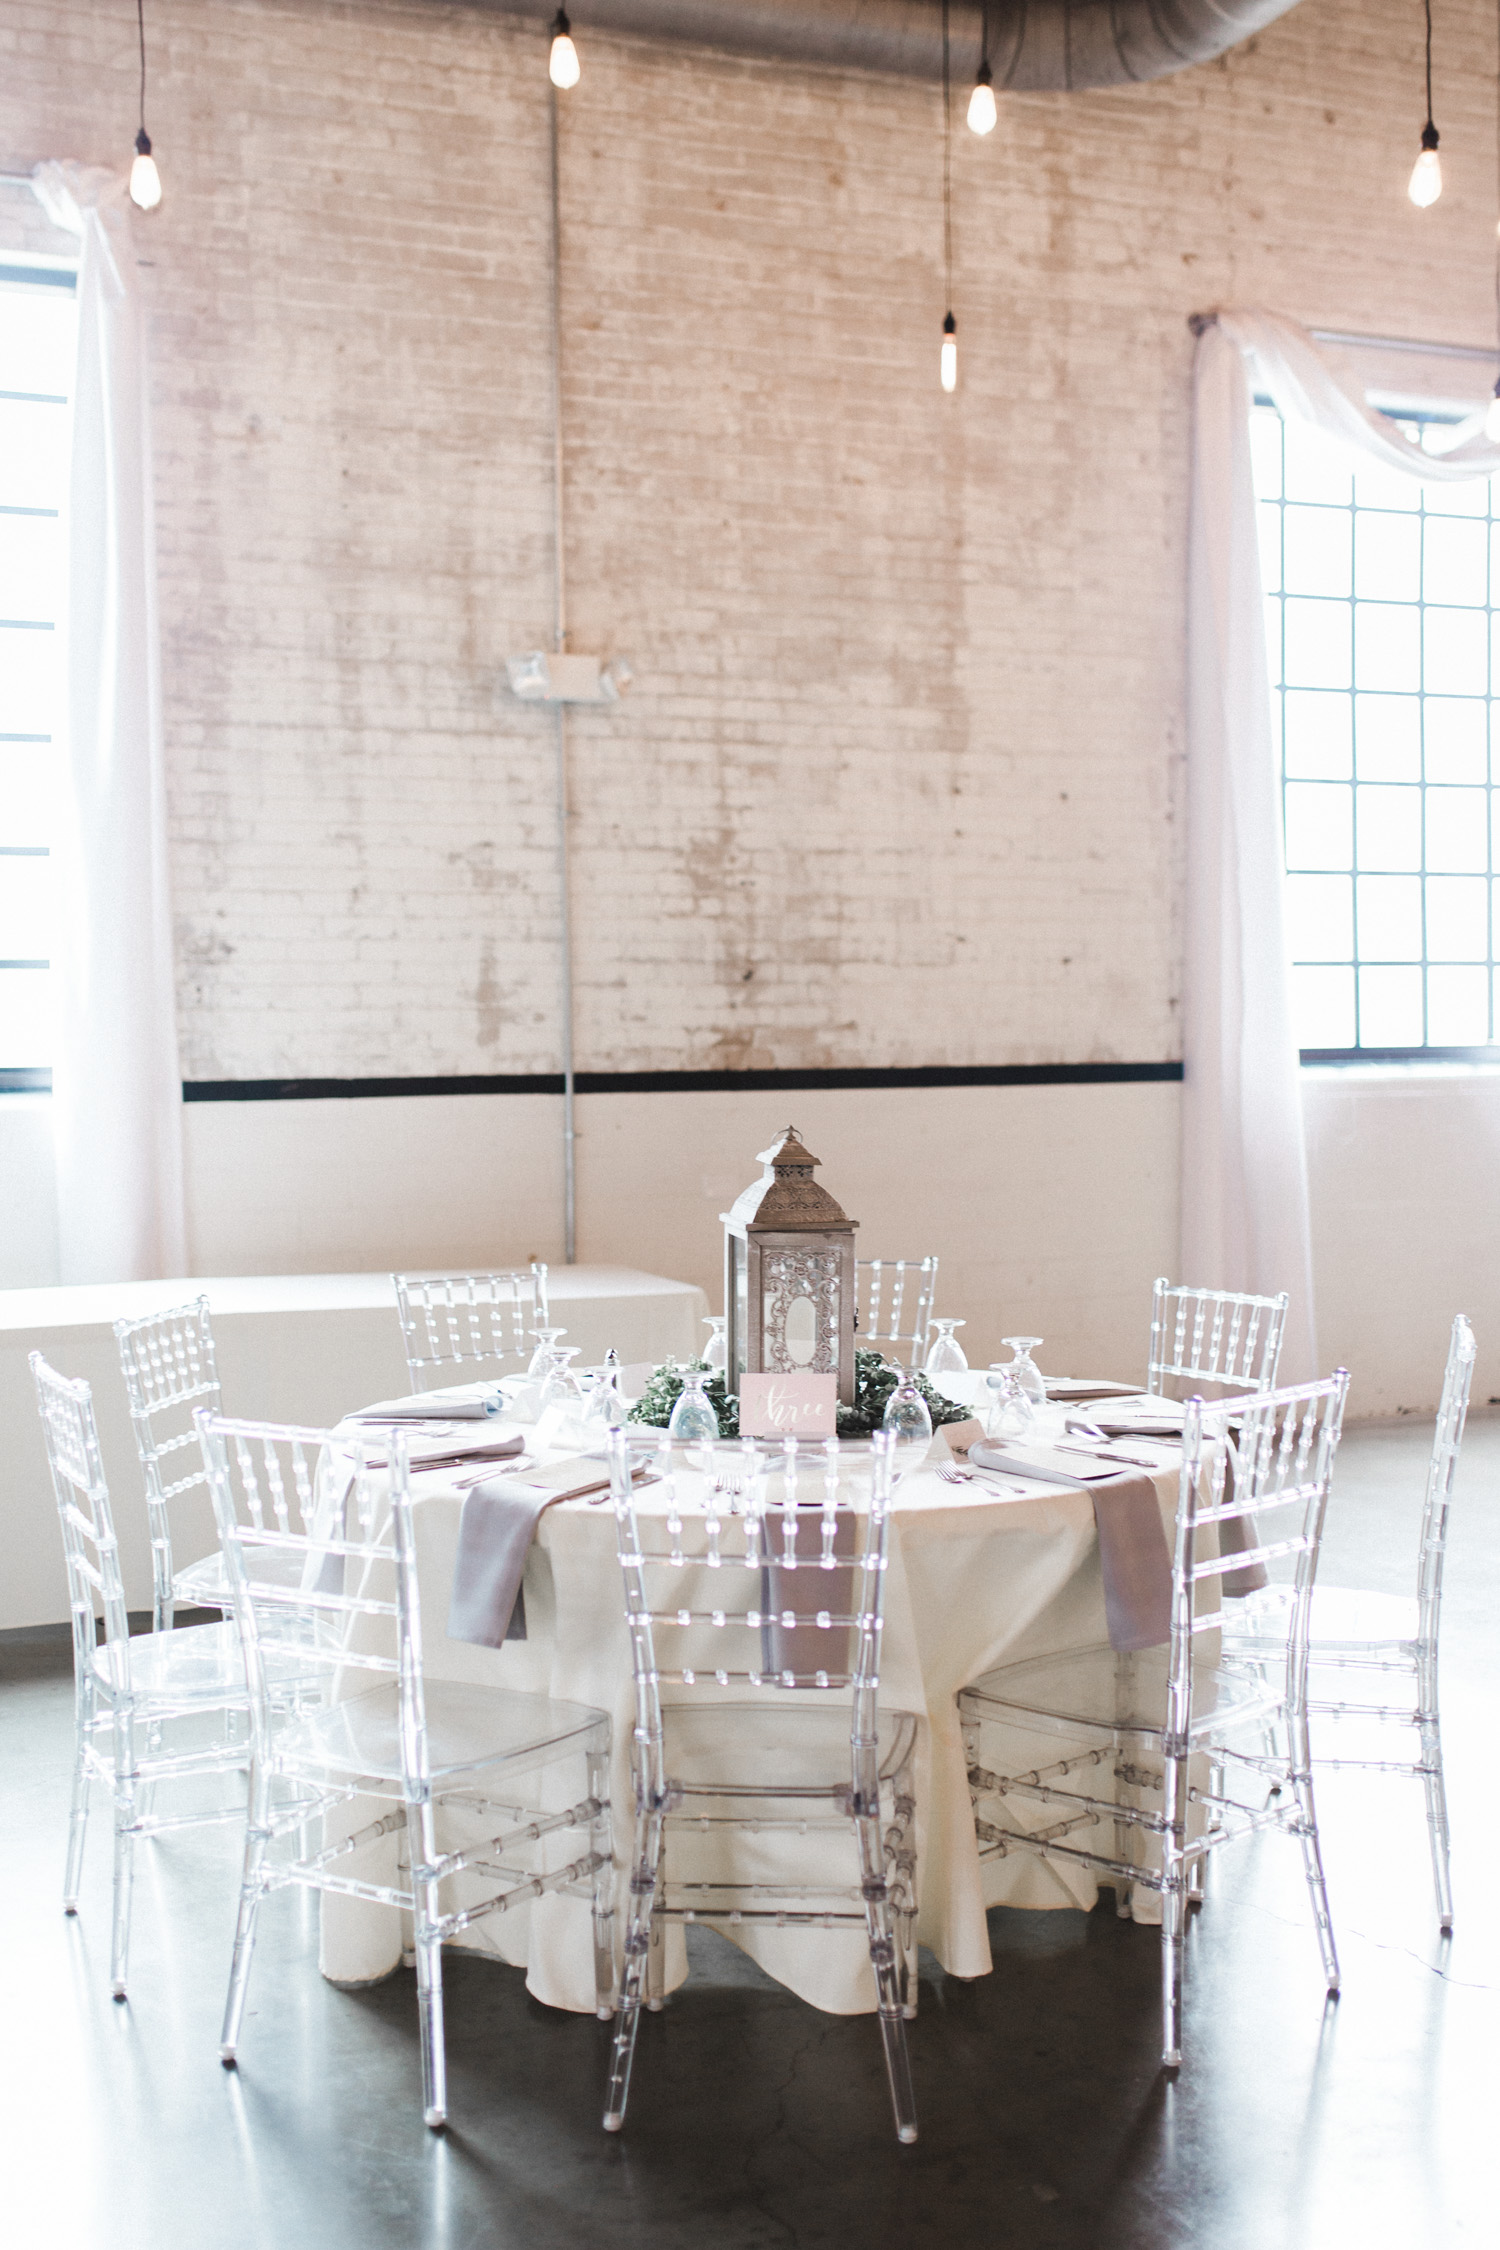 ethereal white and blush reception table setup in an industrial space with clear chiavari chairs, lantern, and greenery at The Brick wedding venue by wedding photographer Christina Harrison